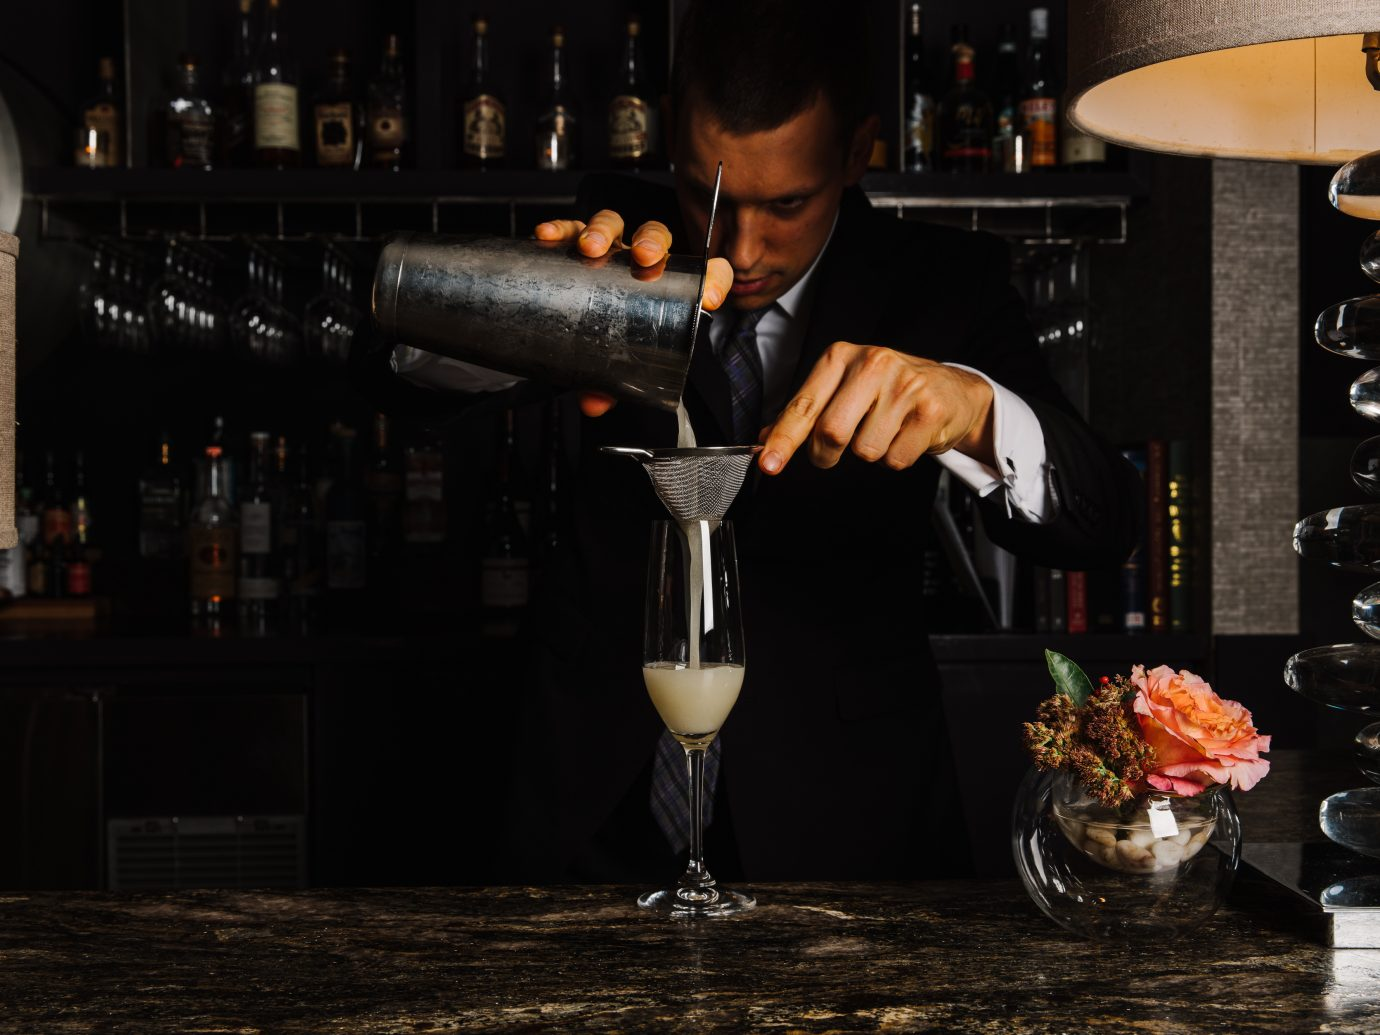 Man straining cocktail in dim lighting